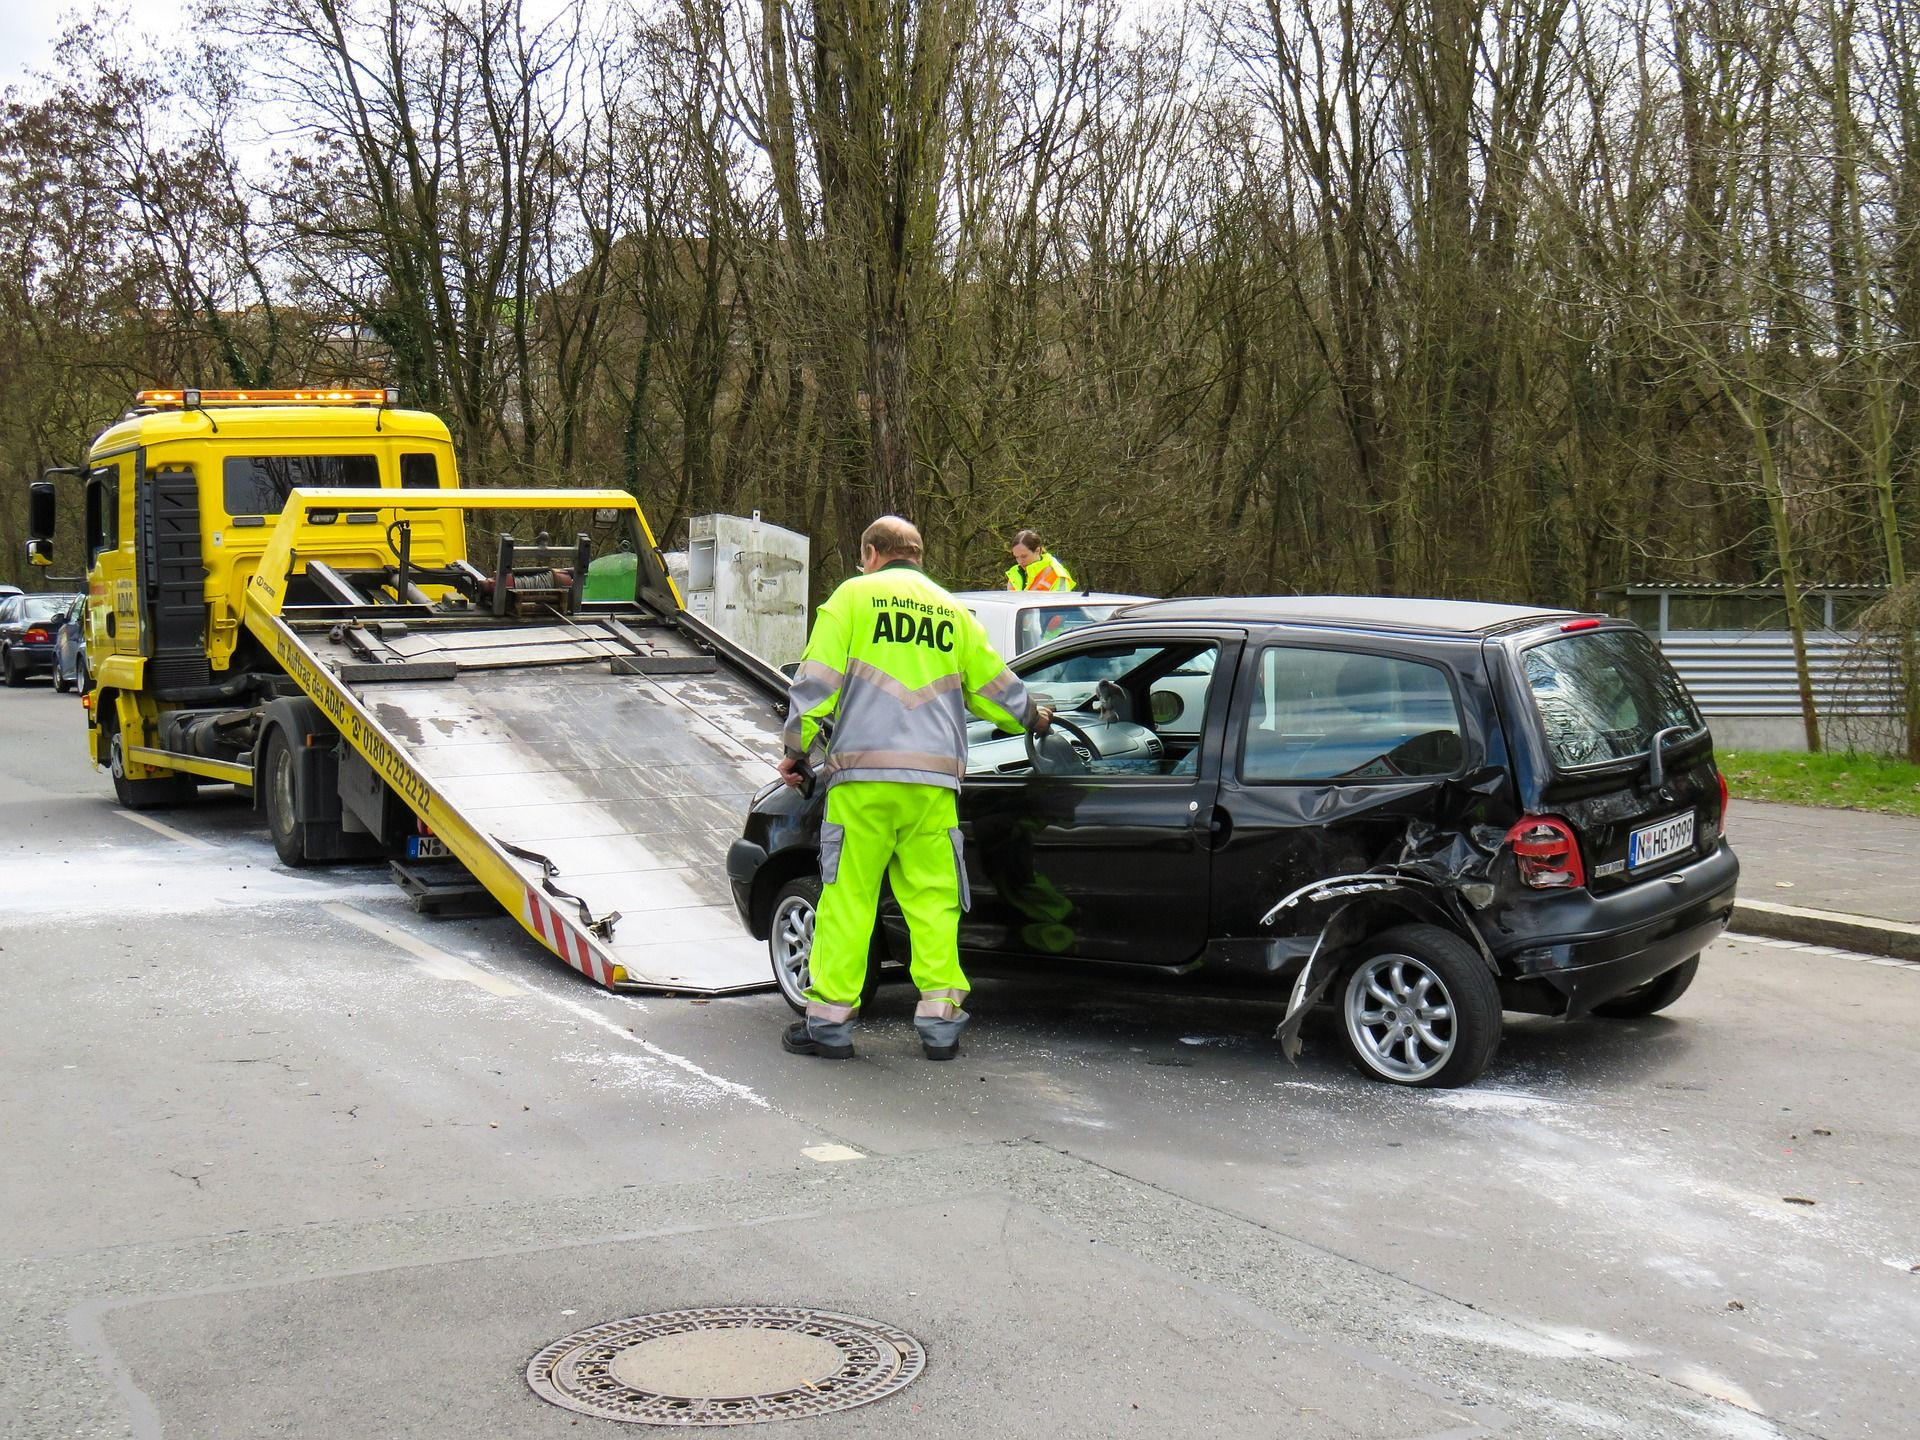 Cheap Roadside Assistance Plans Aid Stranded Drivers